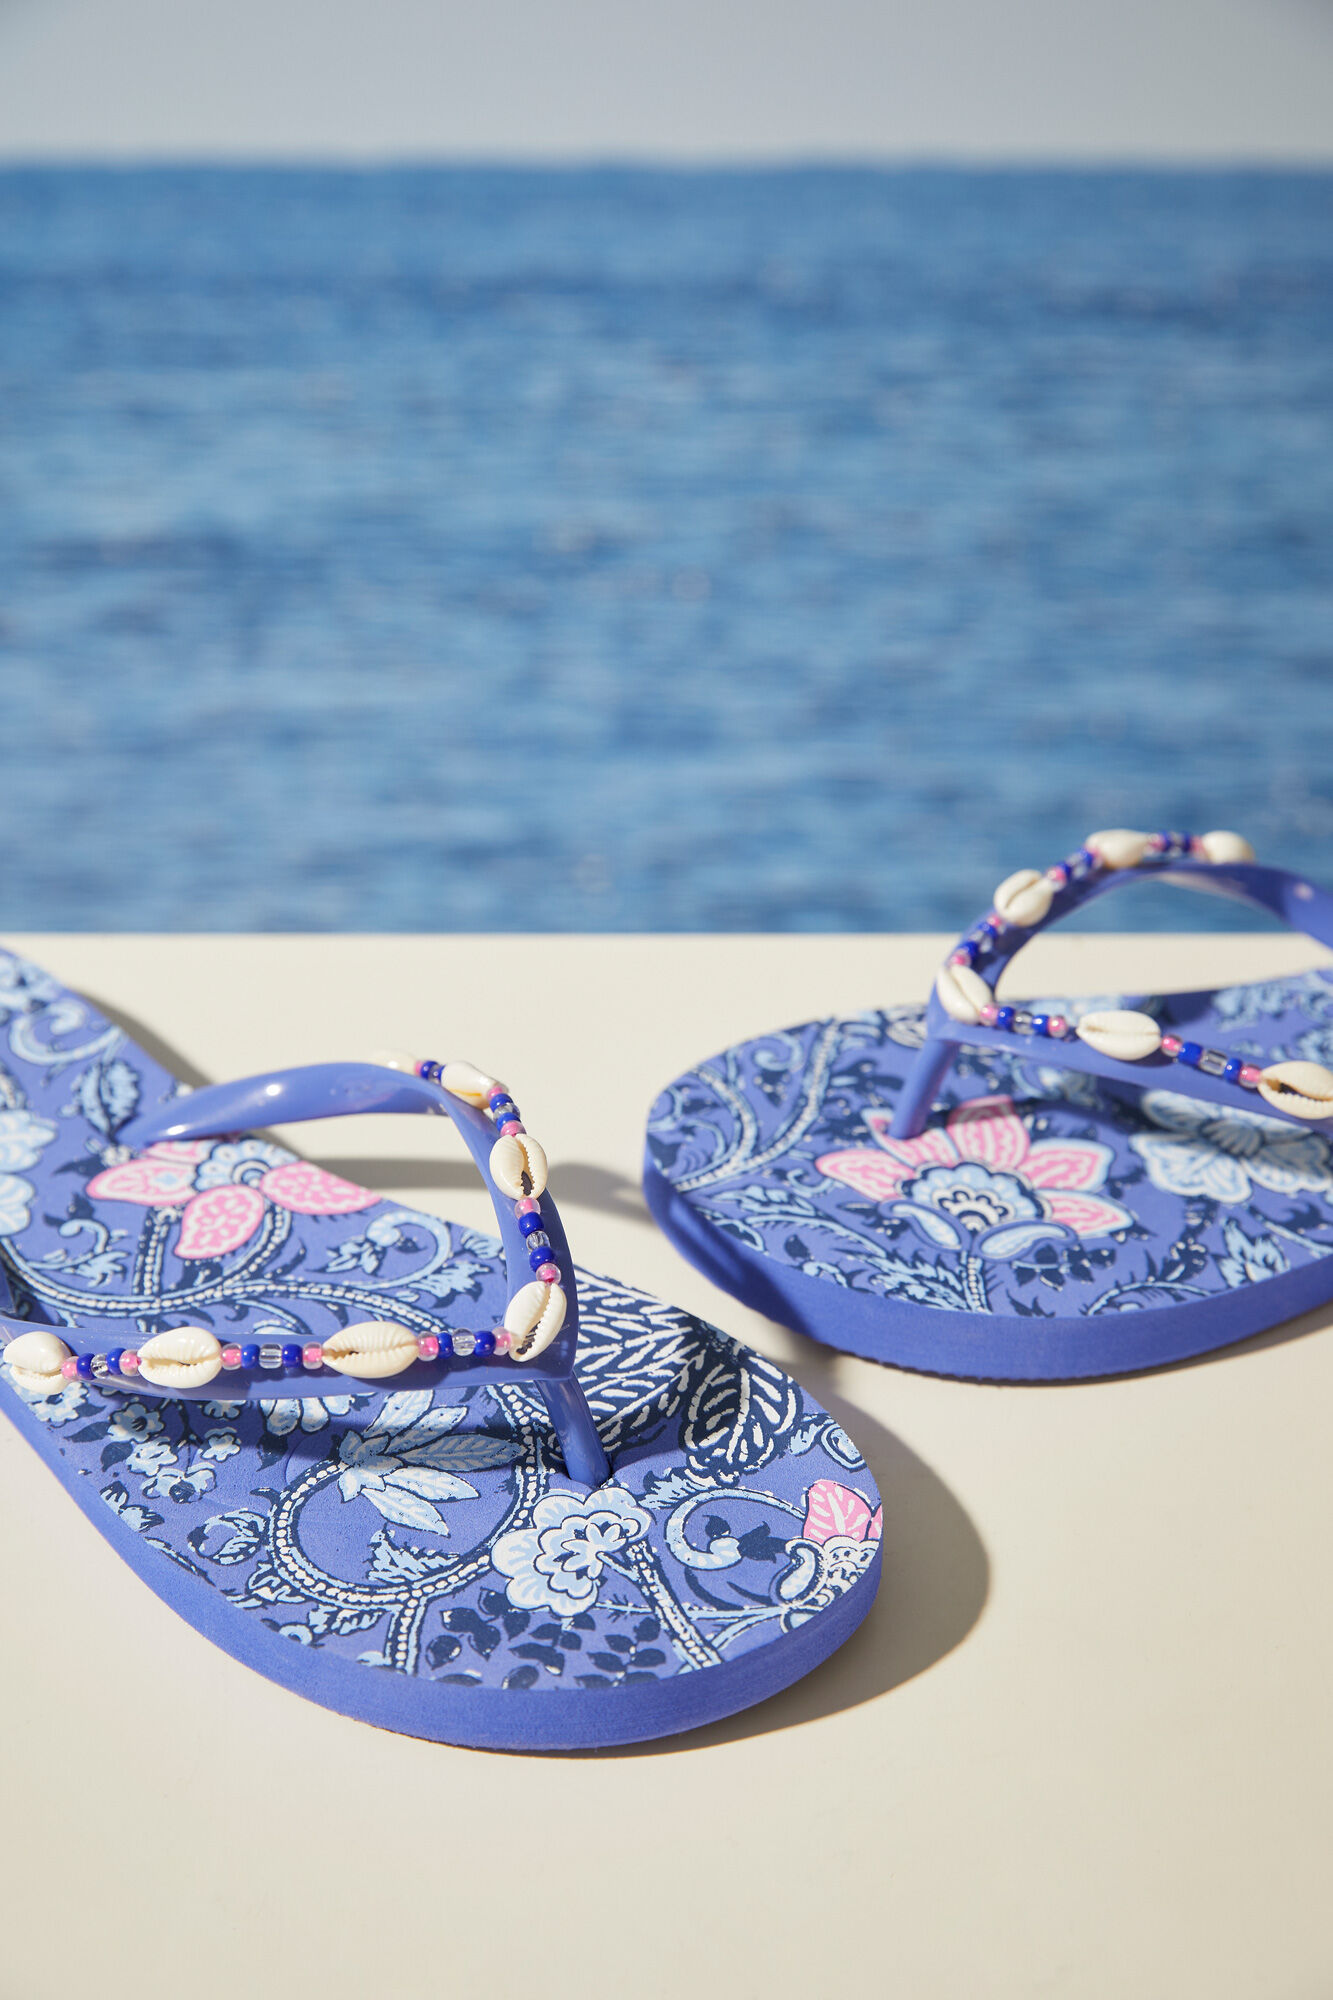 Flip flops printed with shells